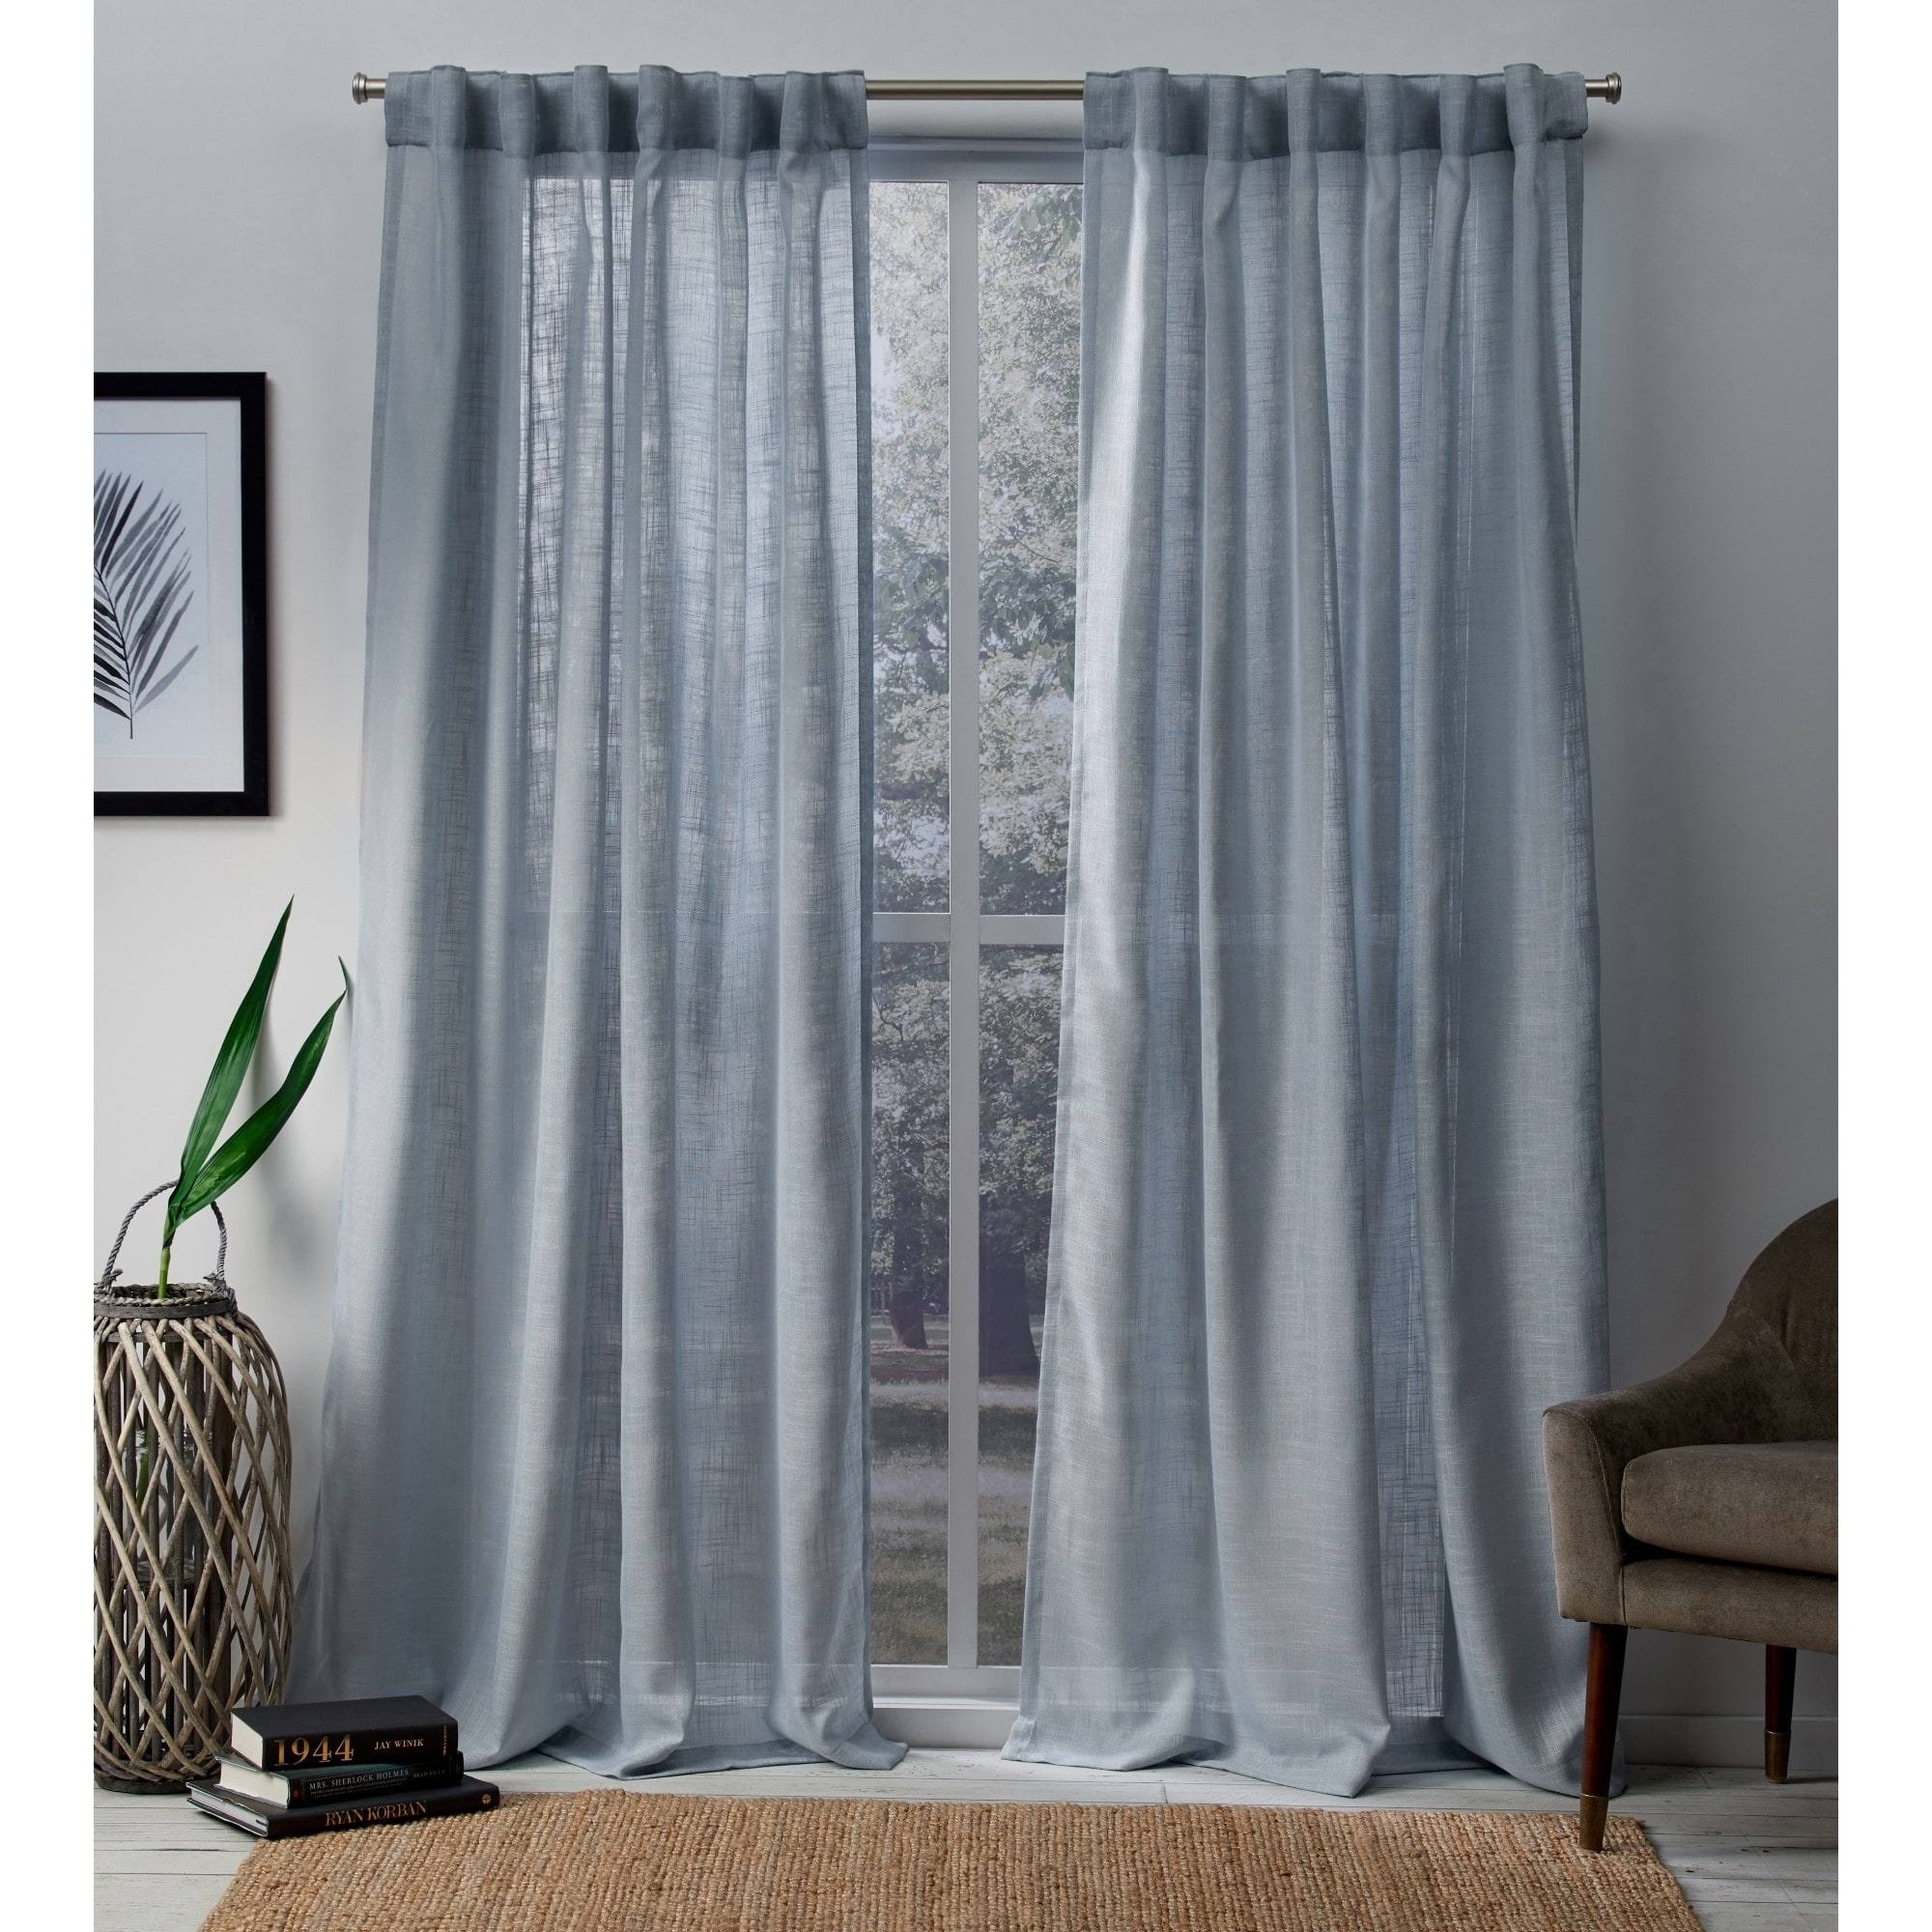 Ati Home Bella Sheer Hidden Tab Top Curtain Panel Pair